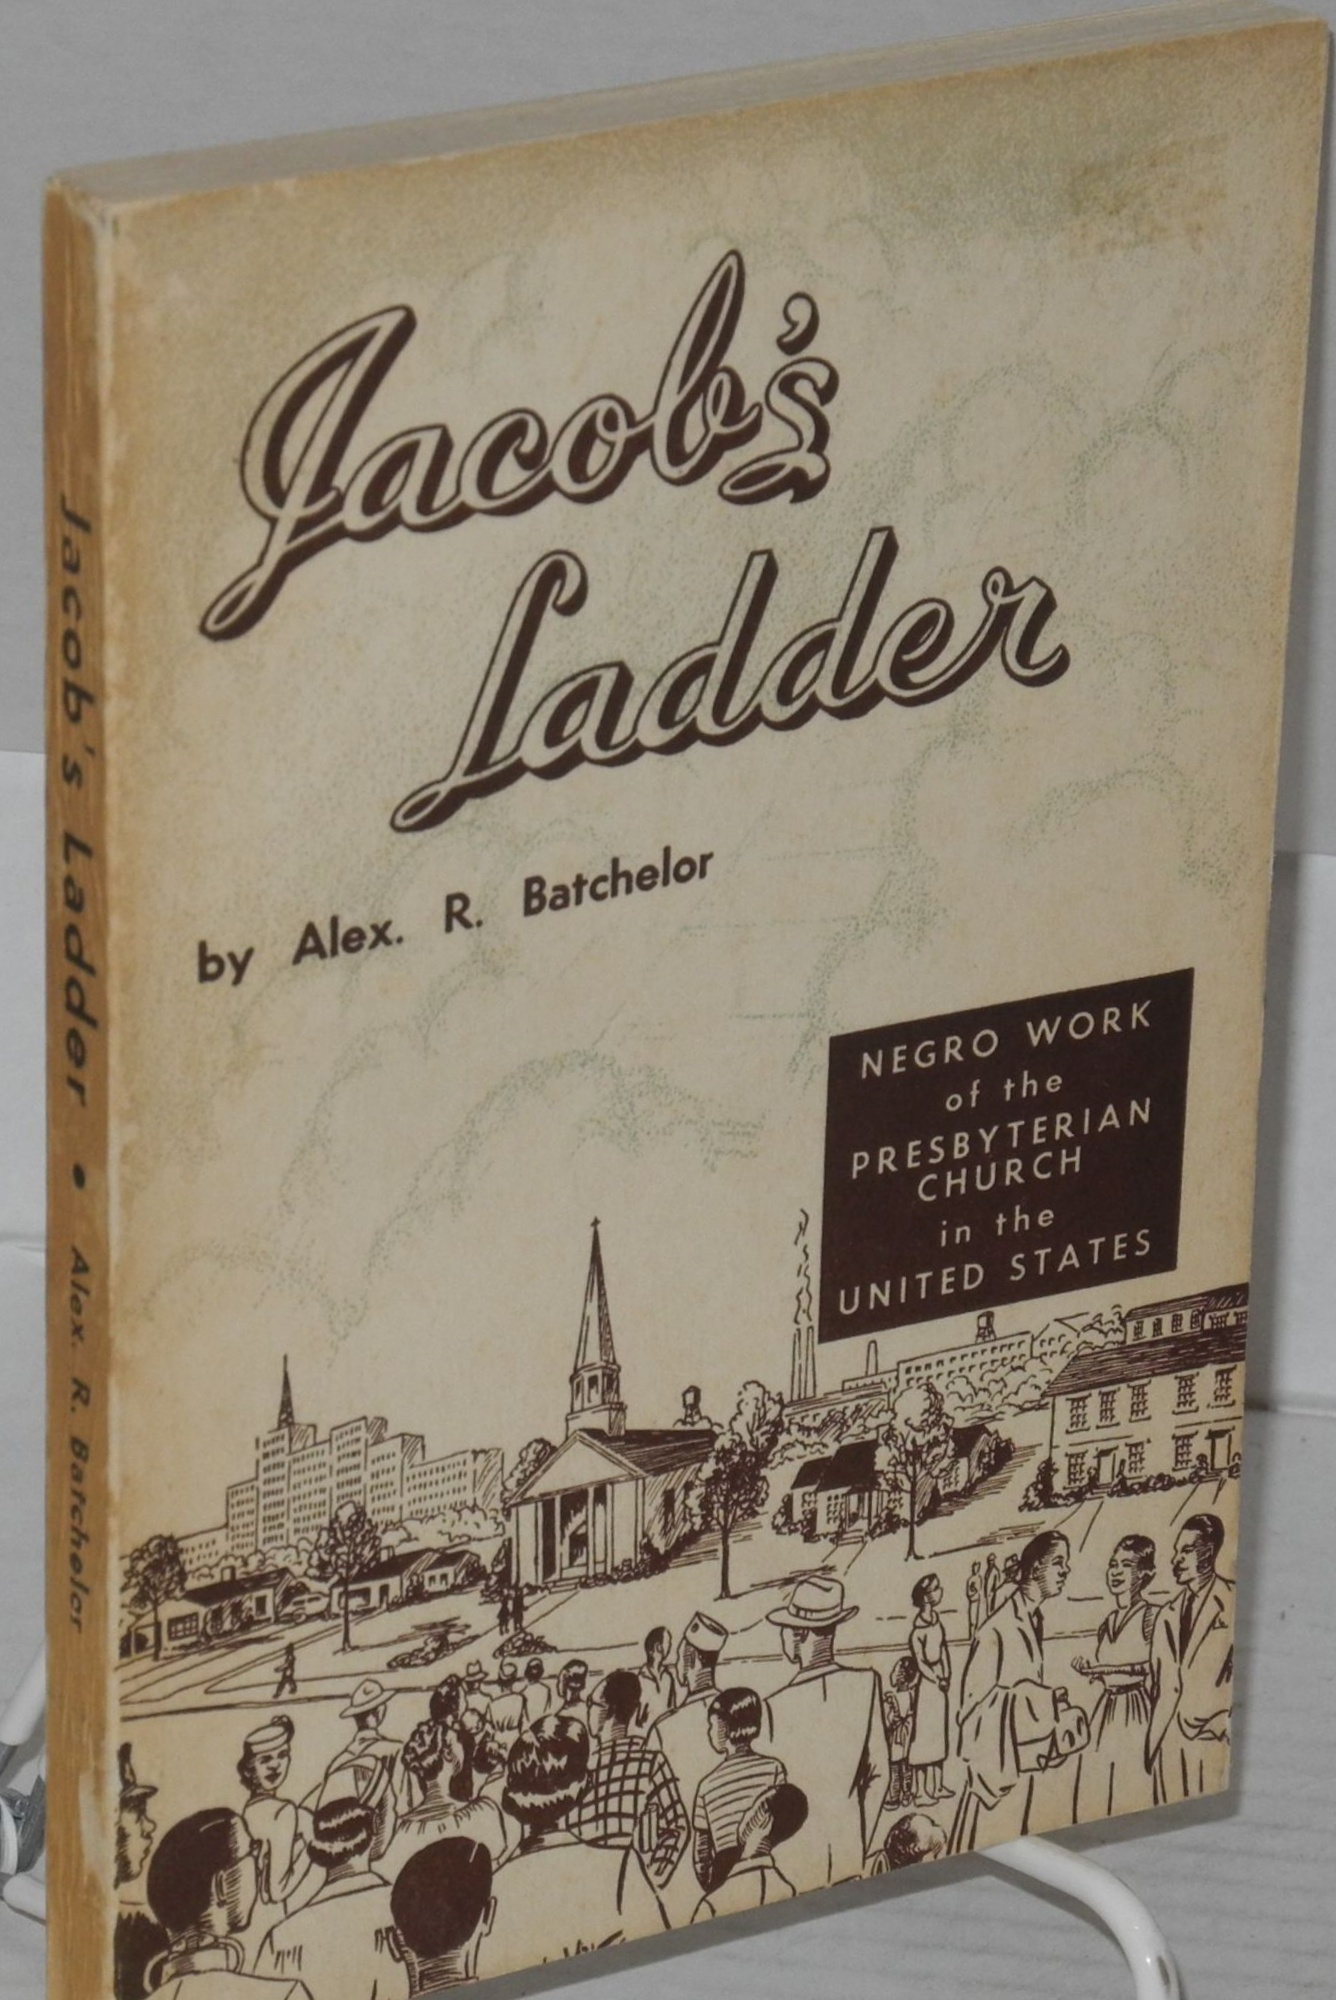 Batchelor, Alexander R., Jacob's Ladder Negro Work of the Presbyterian Church in the US.jpg